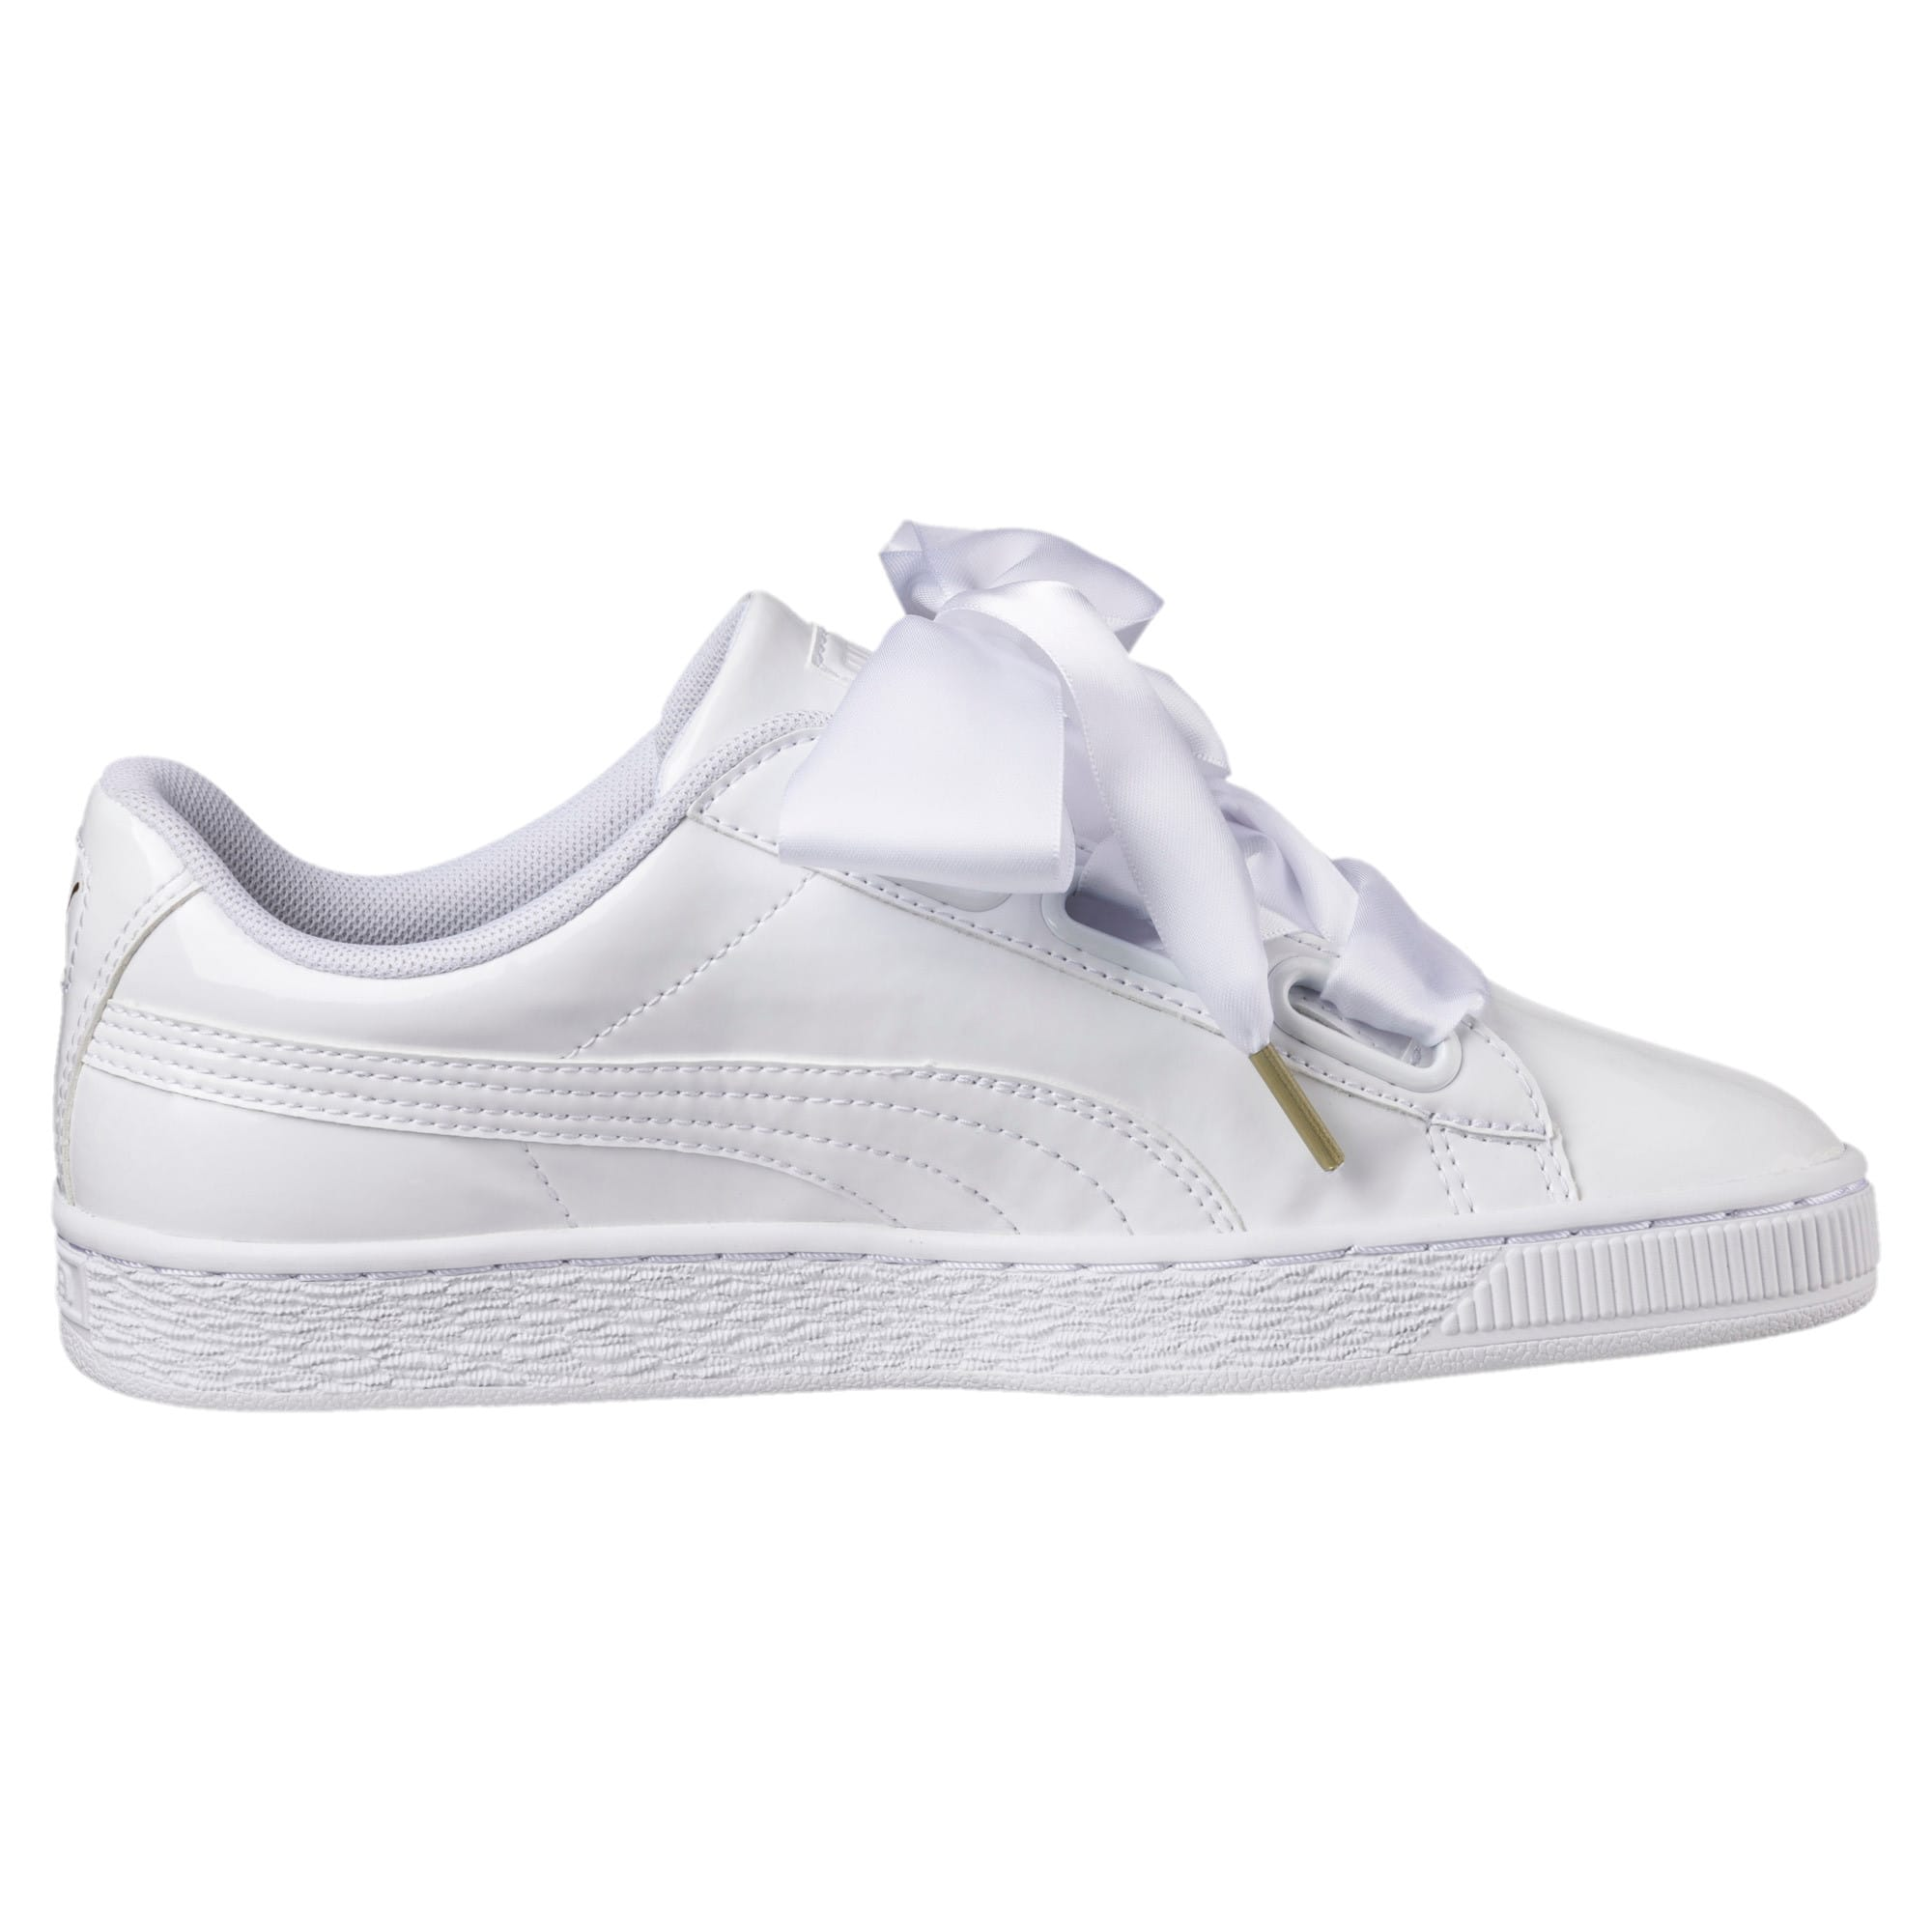 new concept 22ca8 6e153 Basket Heart Patent Women's Sneakers